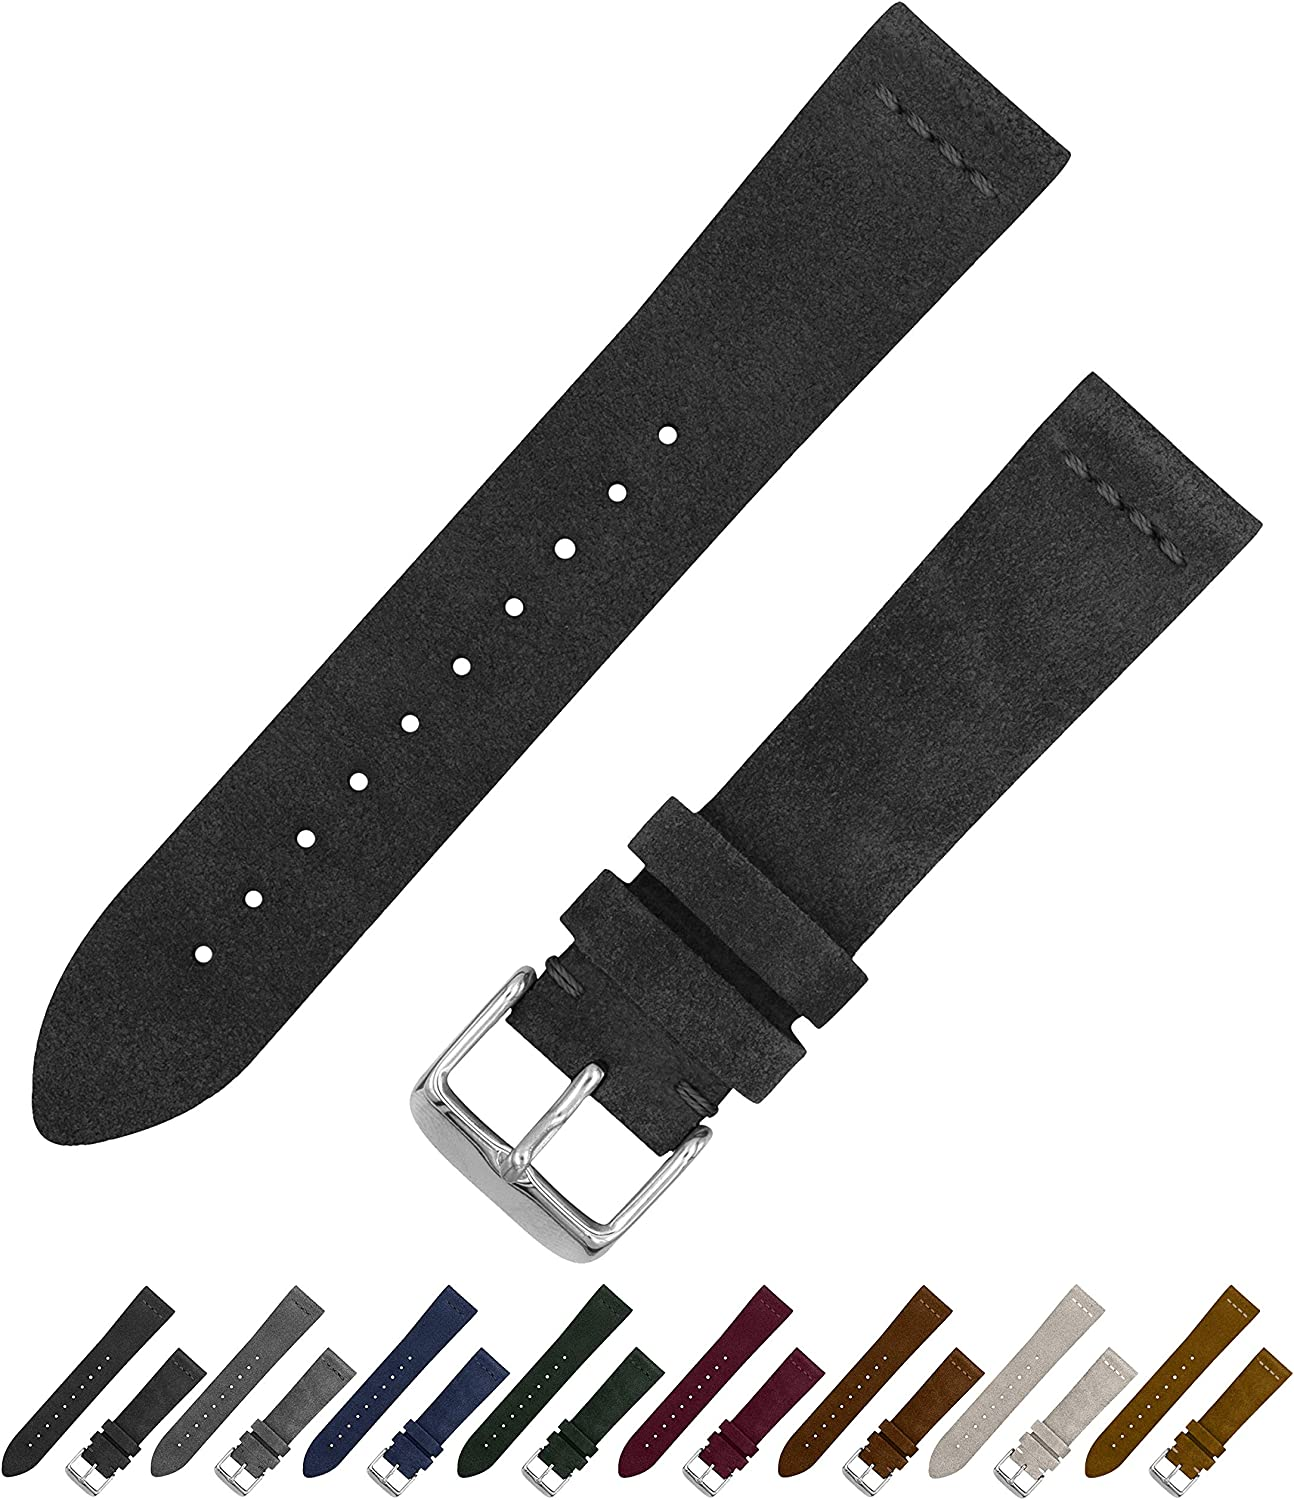 Benchmark Basics Suede Watch Strap - Vintage Leather Watch Band for Men & Women - Compatible with Regular & Smart Watches - Choice of Color & Width - 18mm, 20mm or 22mm